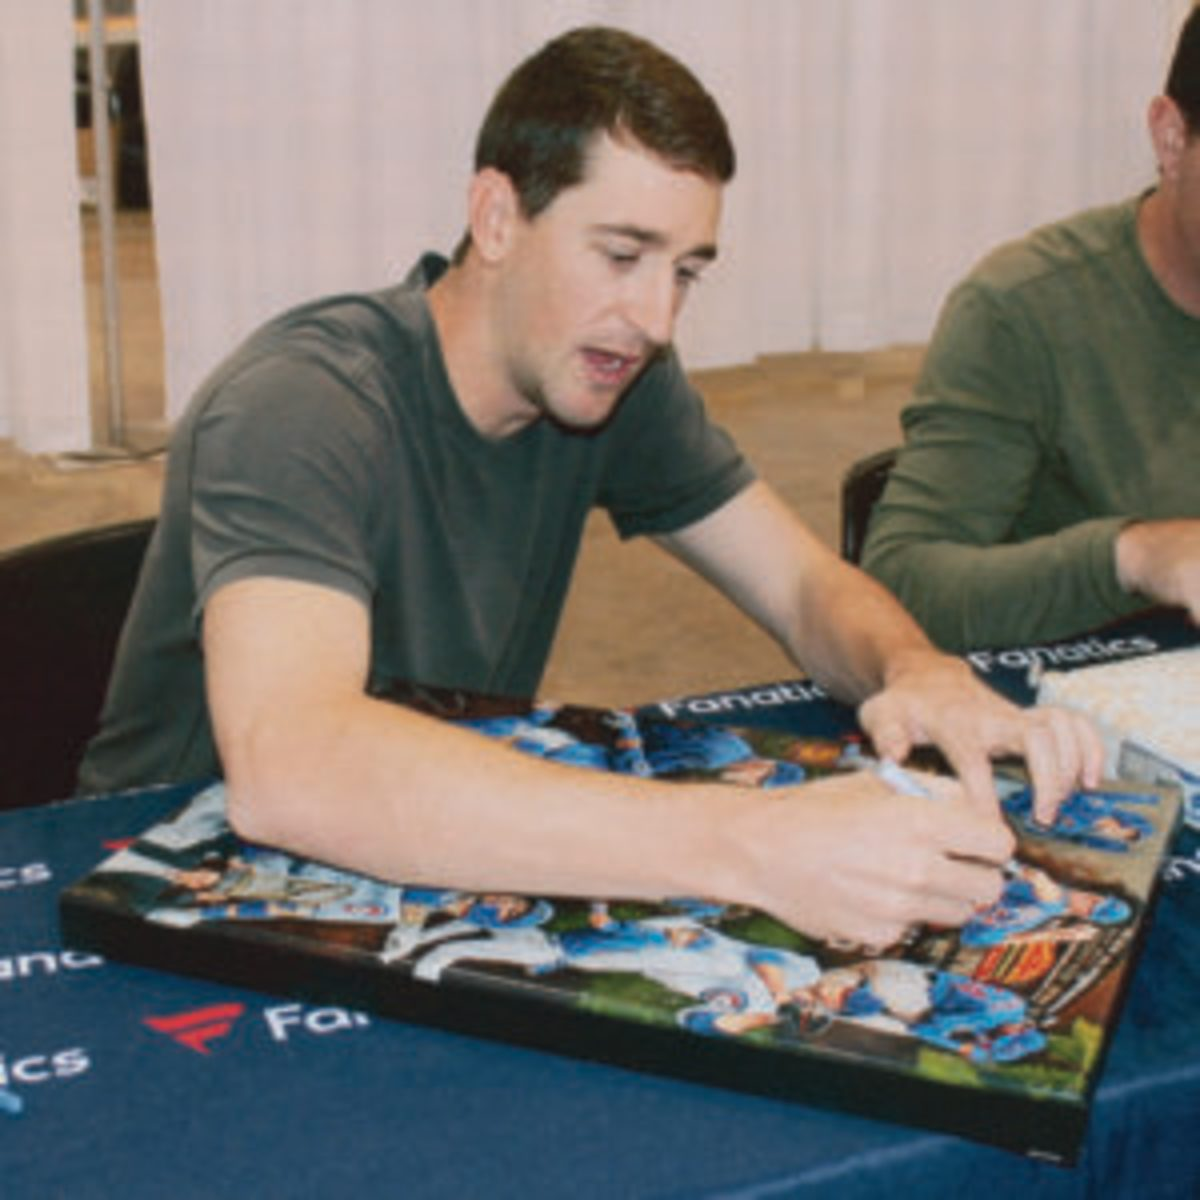 Chicago Cubs starting pitcher Kyle Hendricks signs a collage for a fan. (Rick Firfer photo)